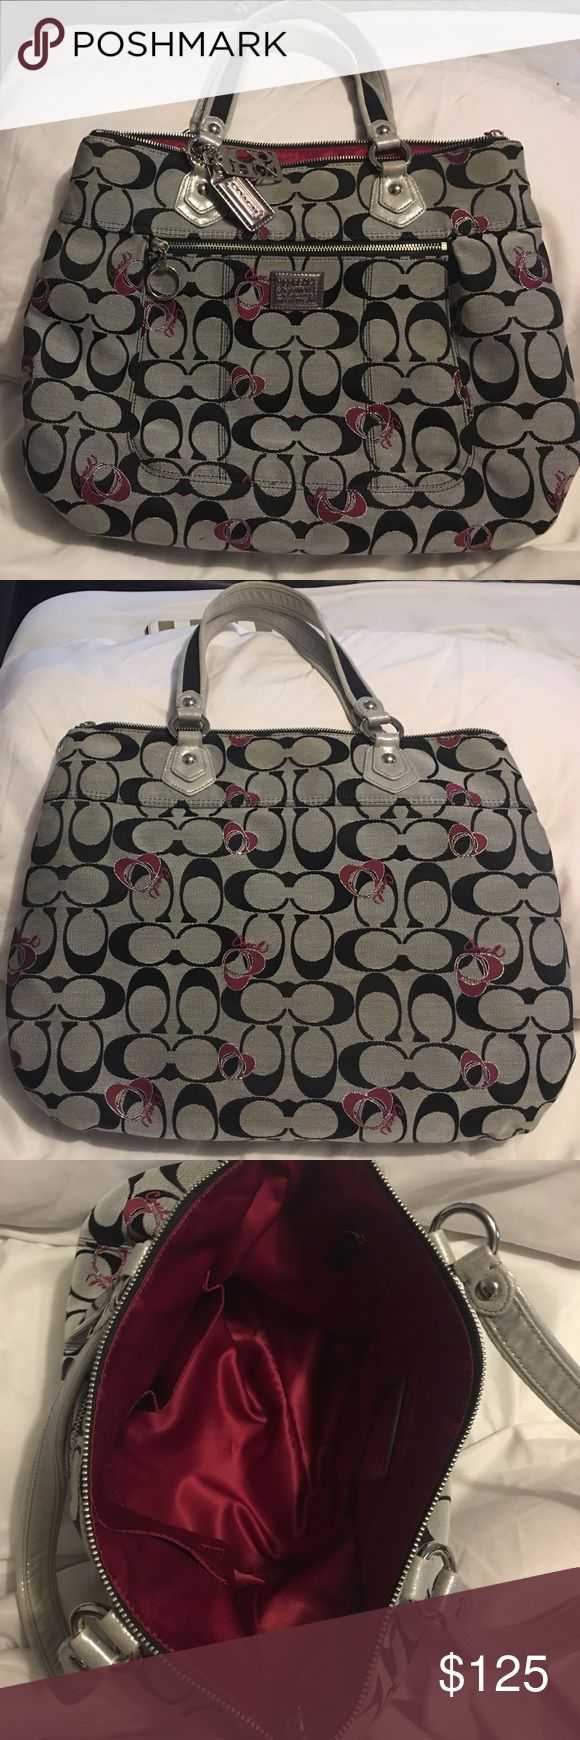 Coach Poppy Handbag Limited Edition Coach Poppy Bag. Black and grey with magenta accents. No longer available in stores. Used rarely. Great condition inside and out. MSRP: $398.00 Coach Bags